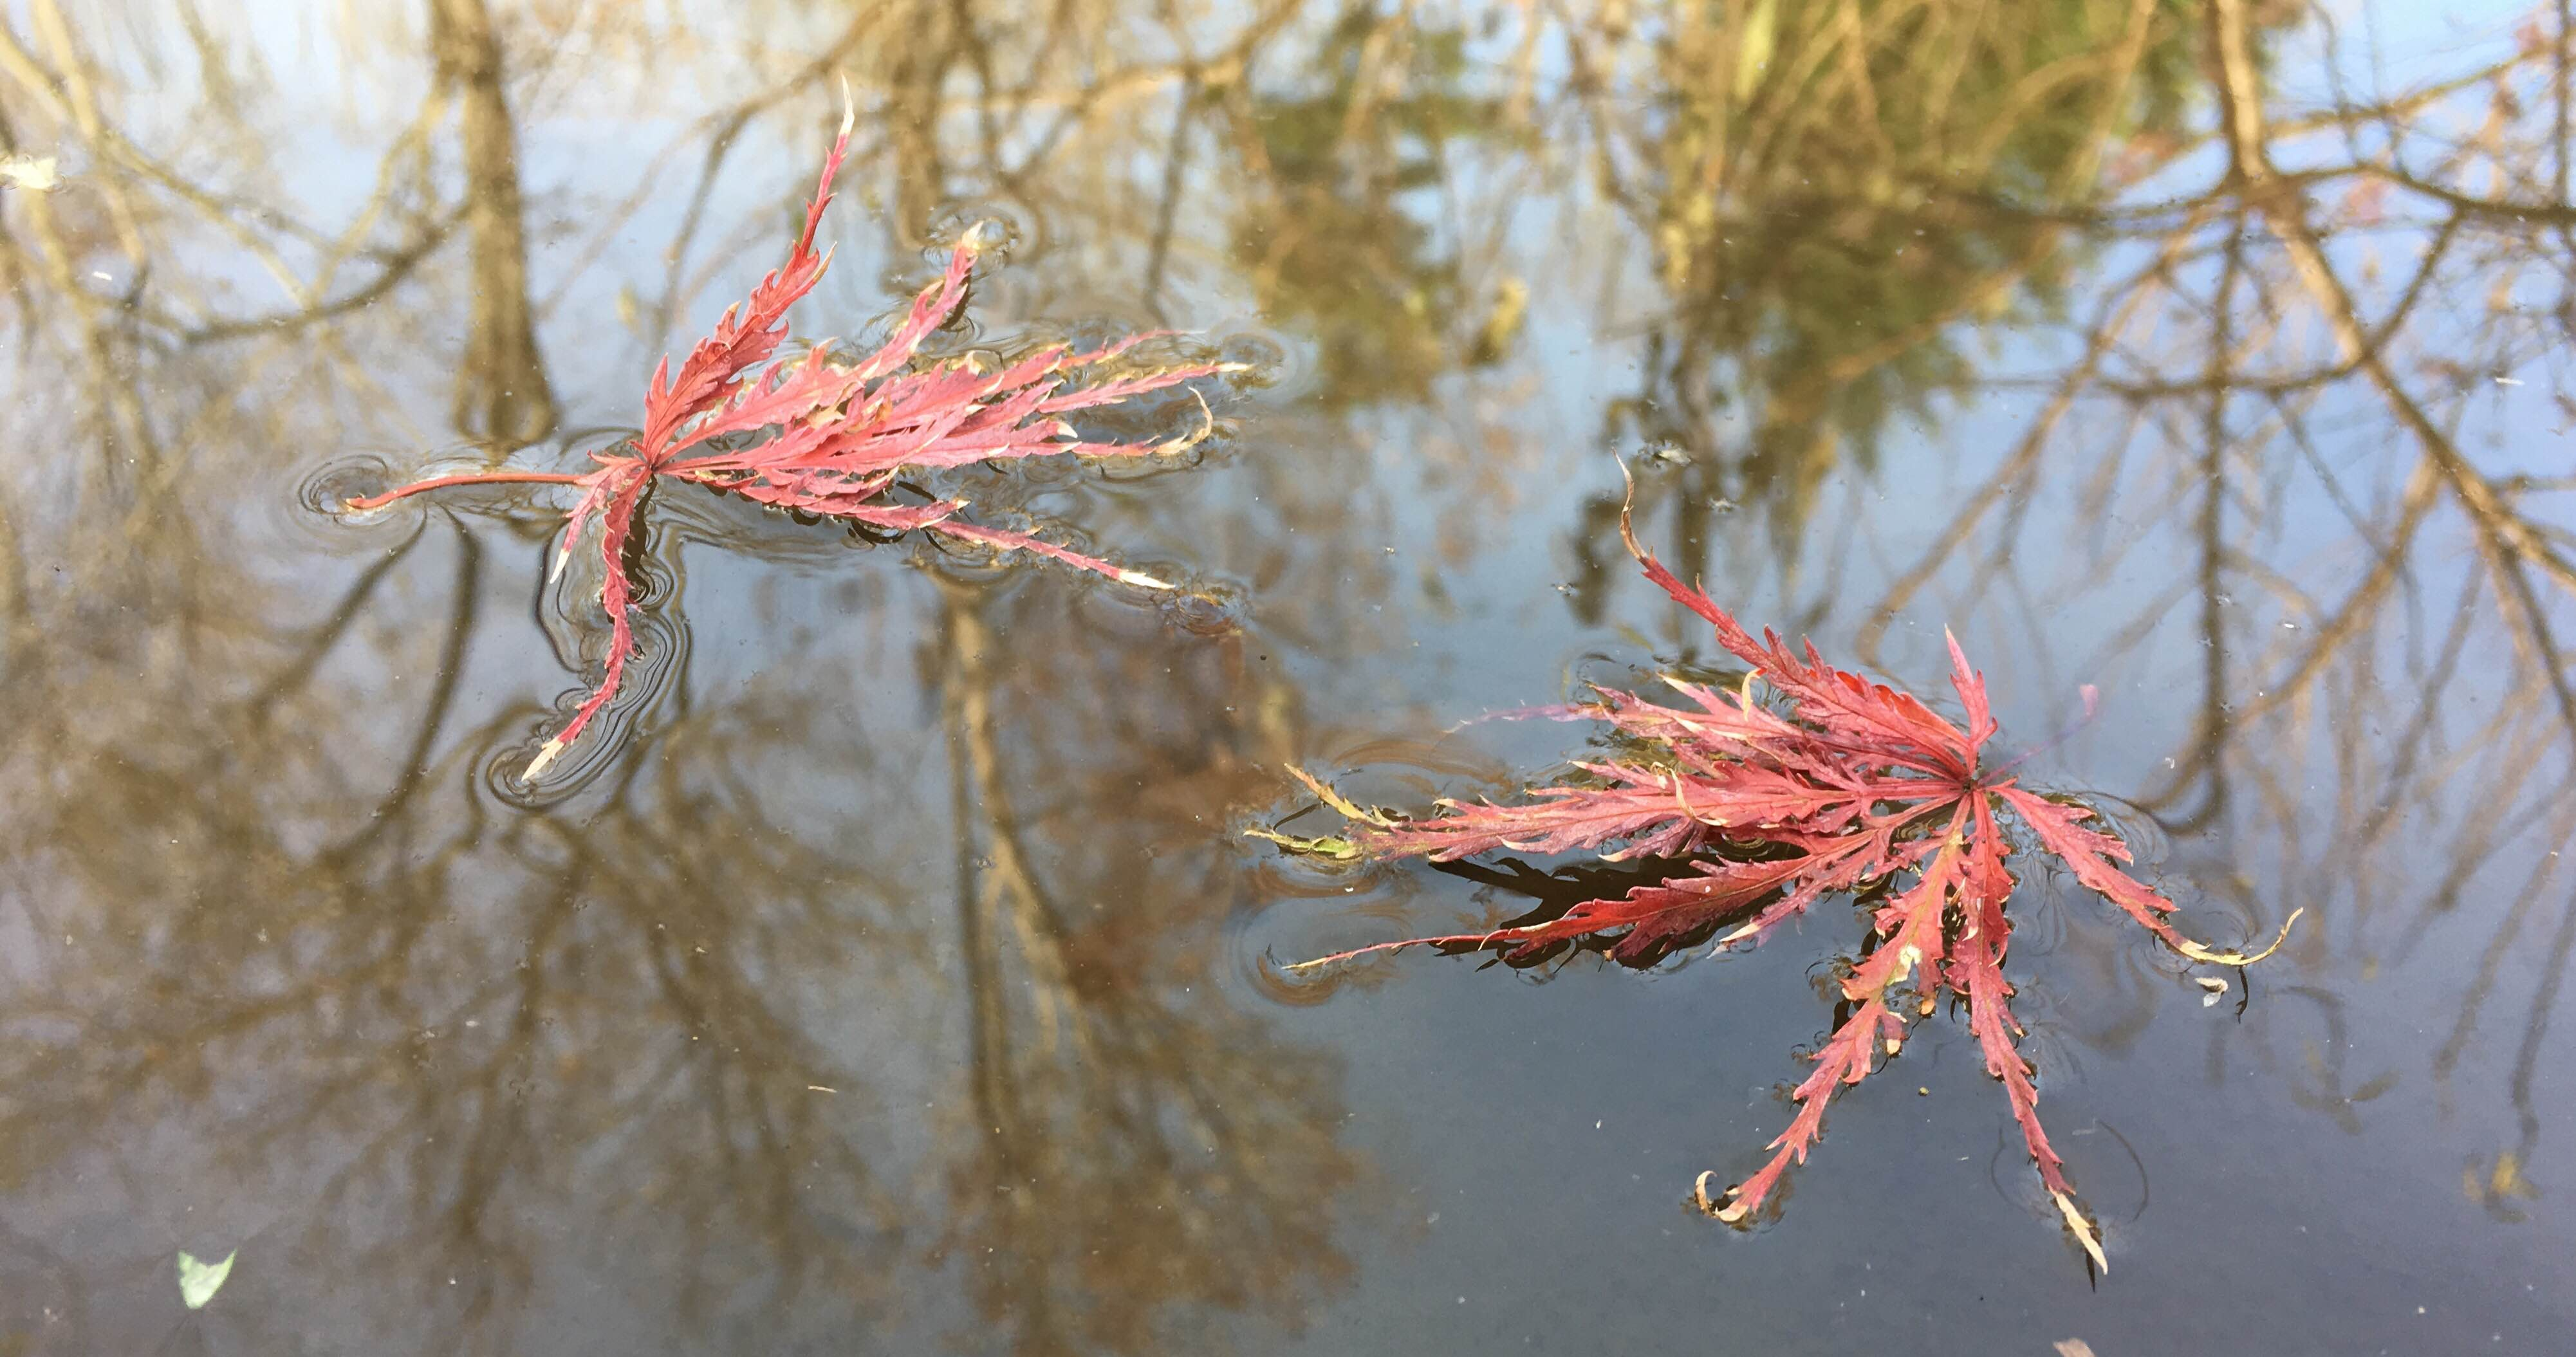 Newly fallen Japanese maple leaves on a pond.